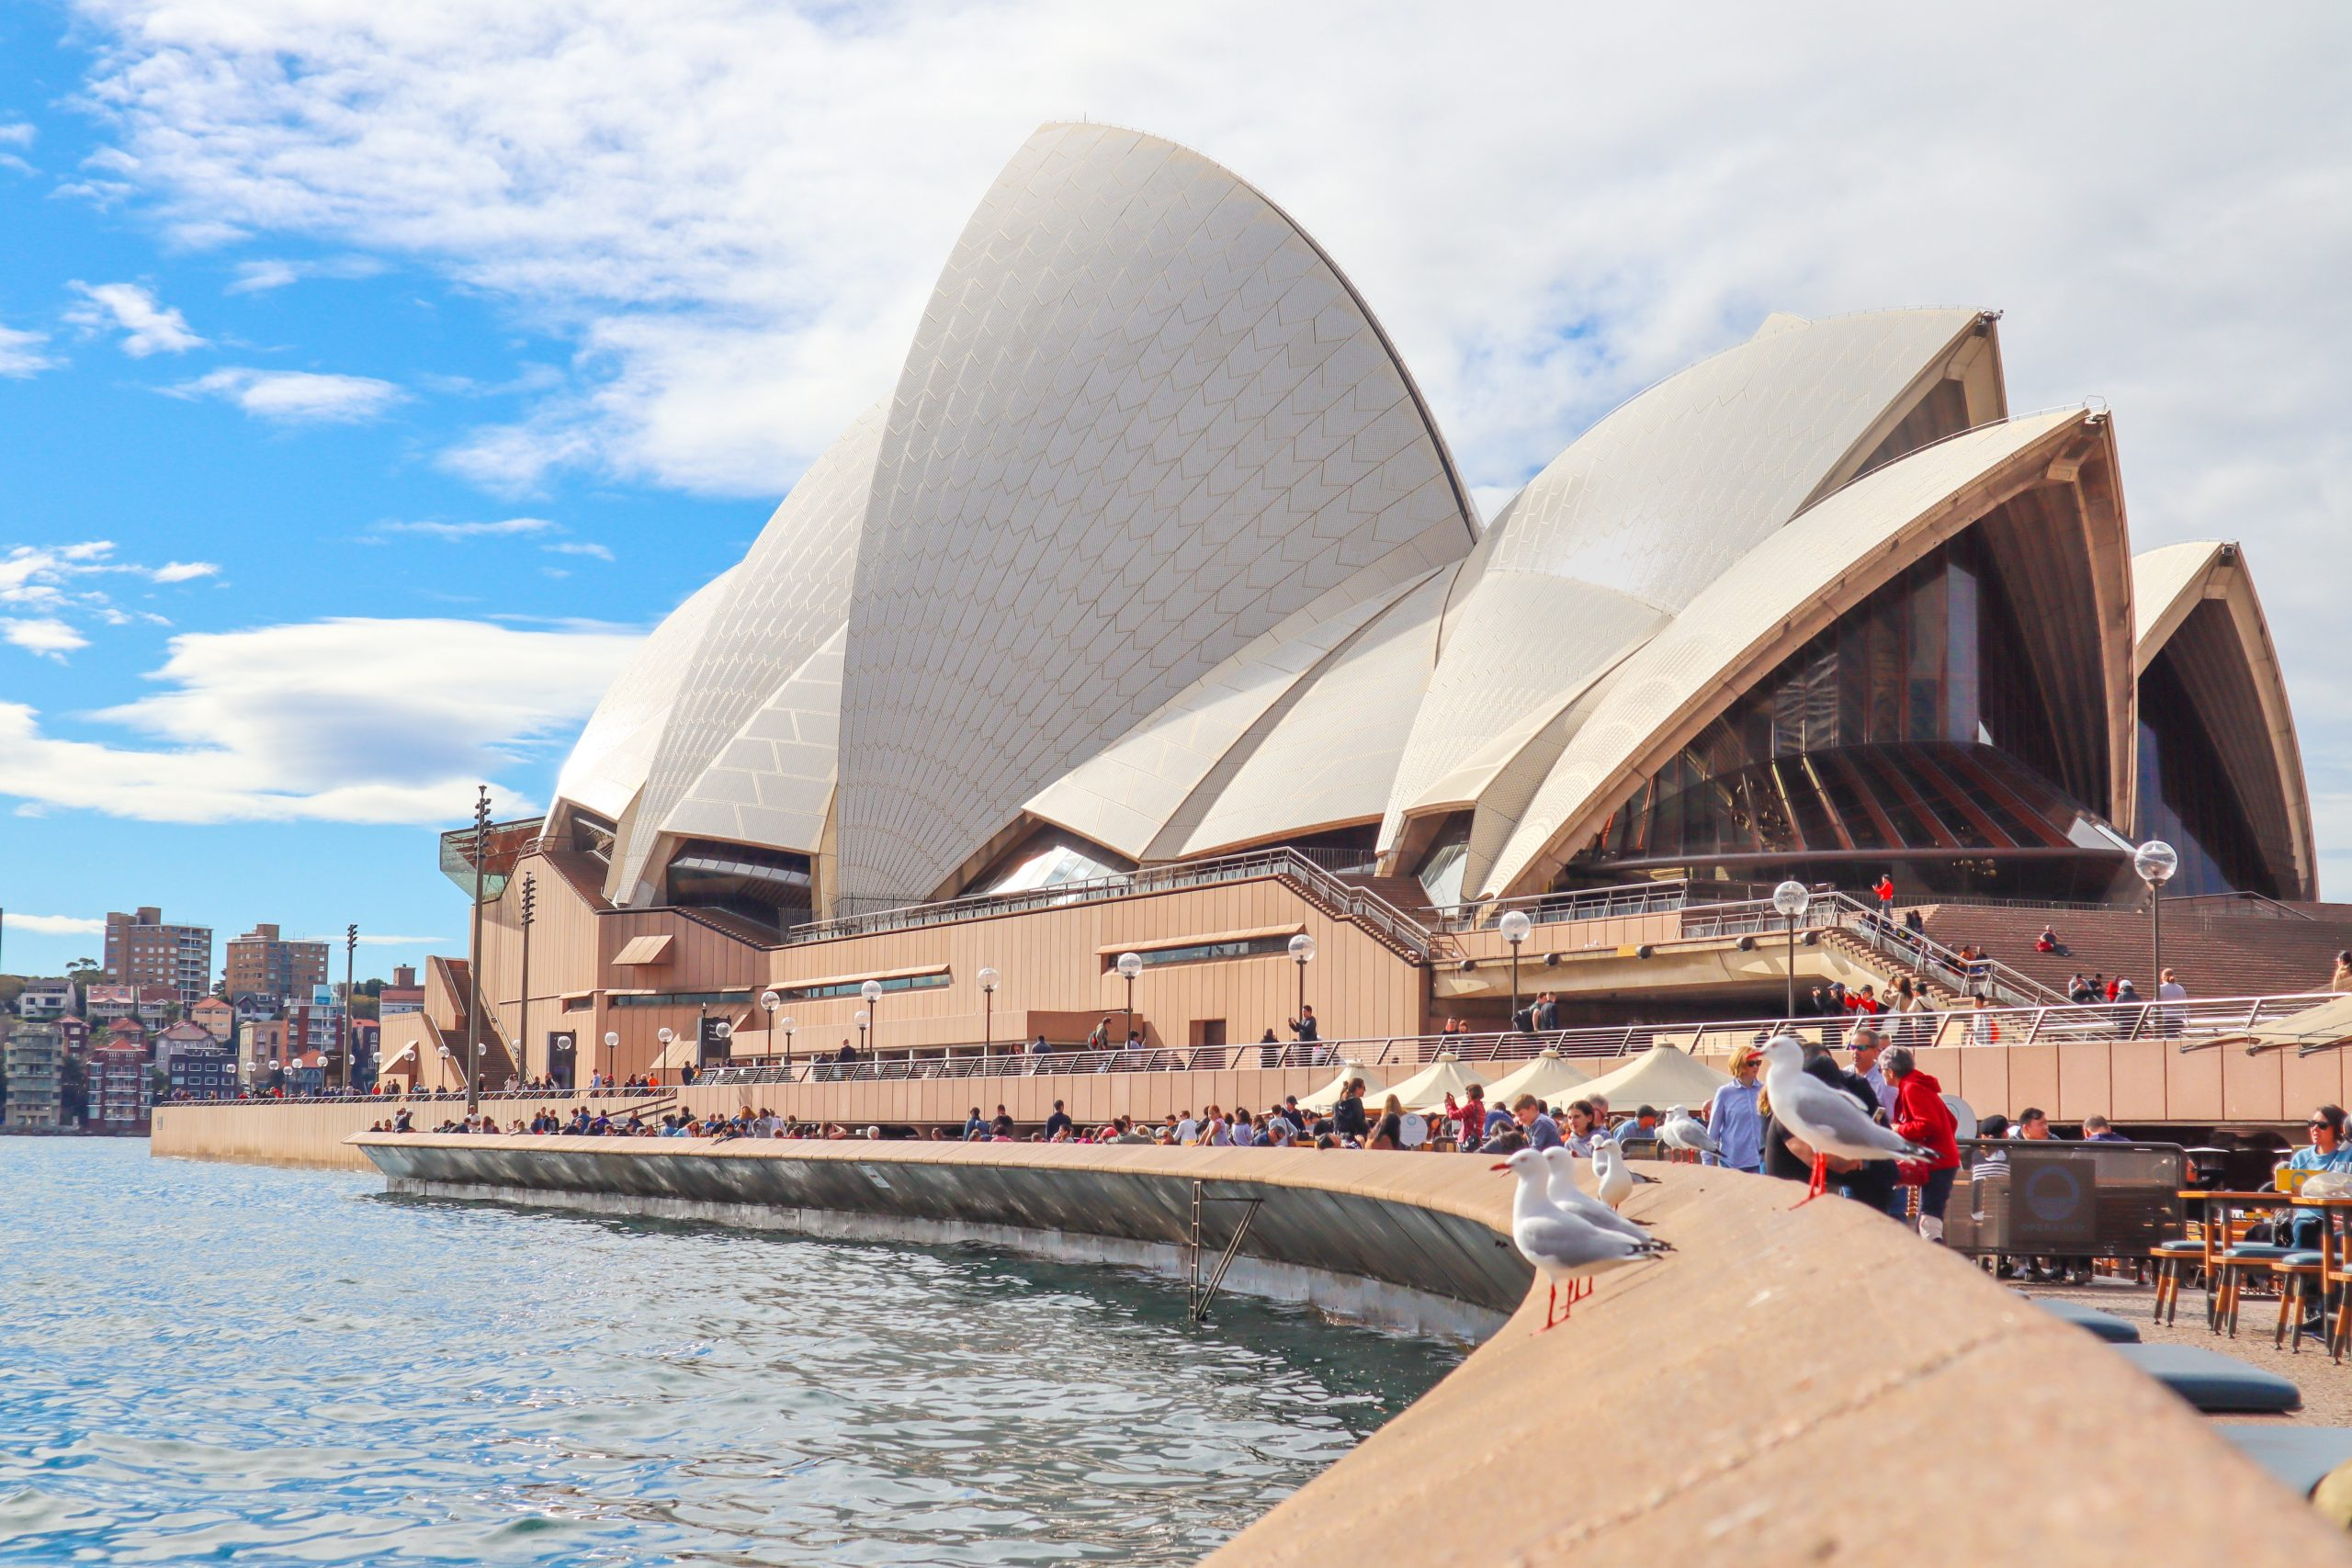 We can't wait to visit Australia, The Land Down Under